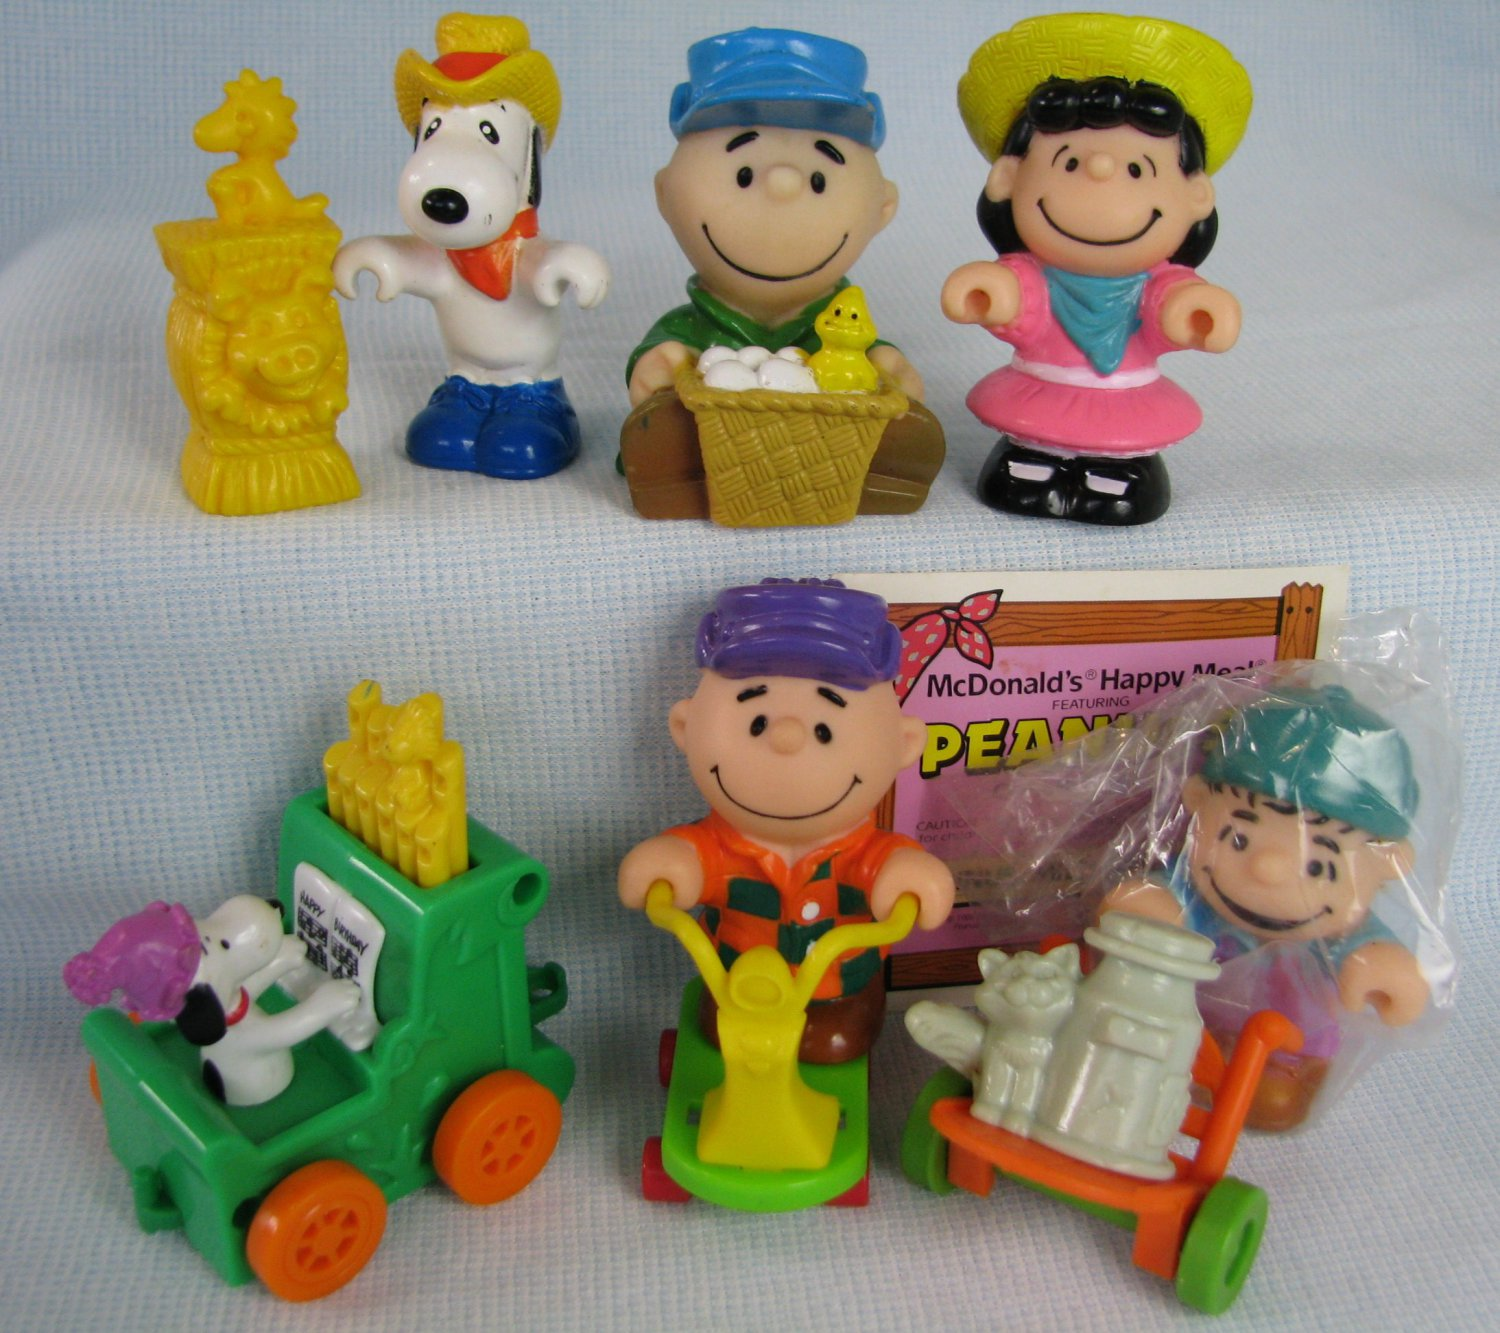 67befcd6f2 McDonalds Happy Meal Toys PEANUTS Figures Snoopy Lucy